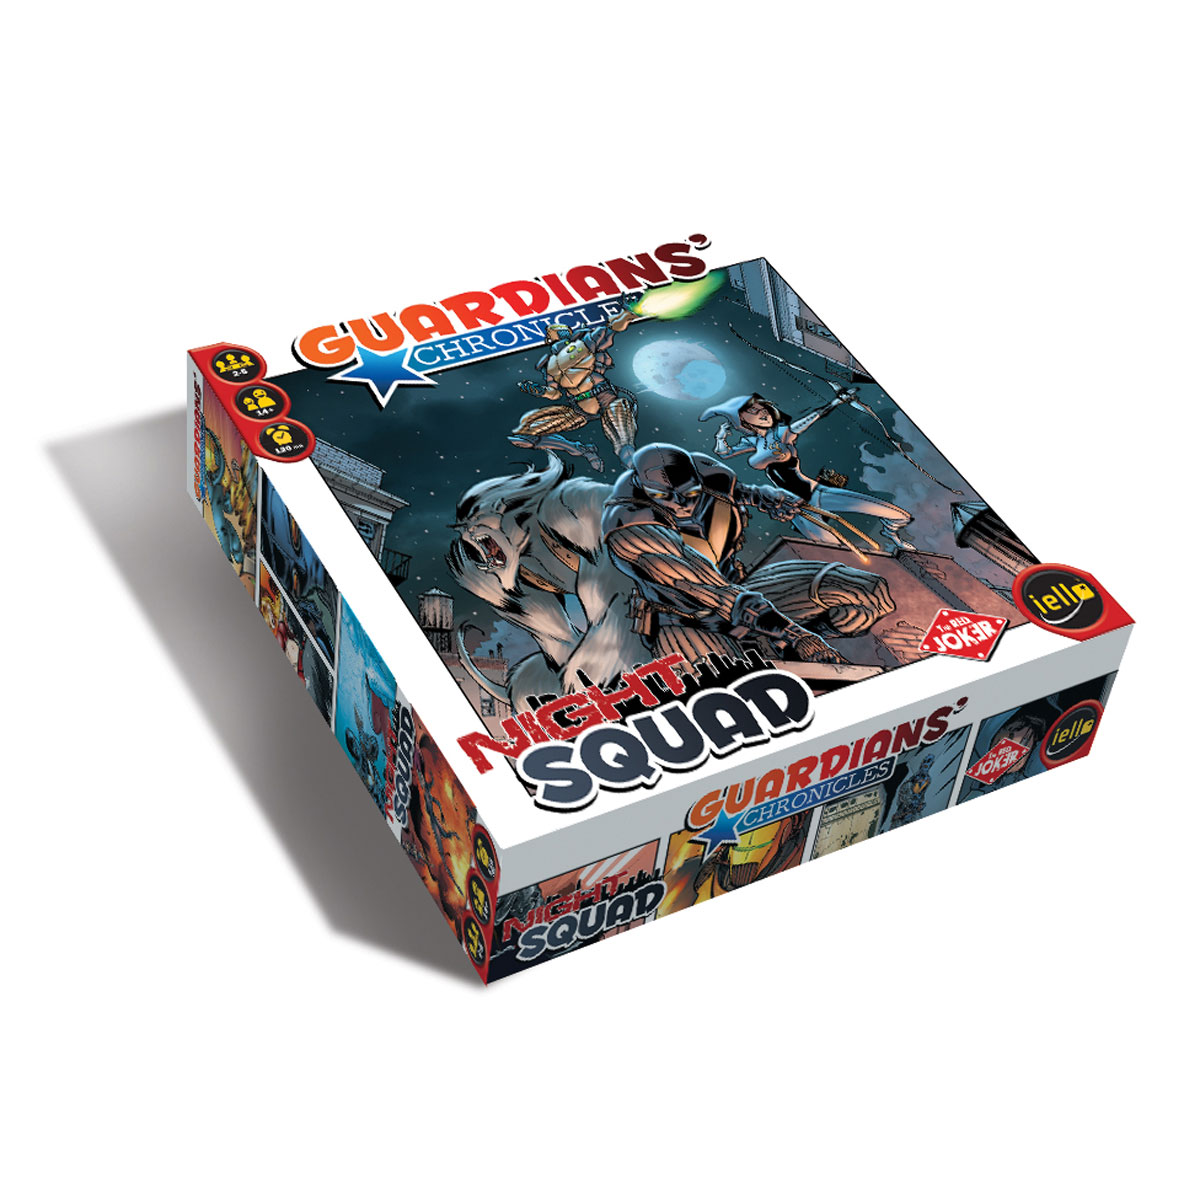 GC_NightSquad_3Dbox